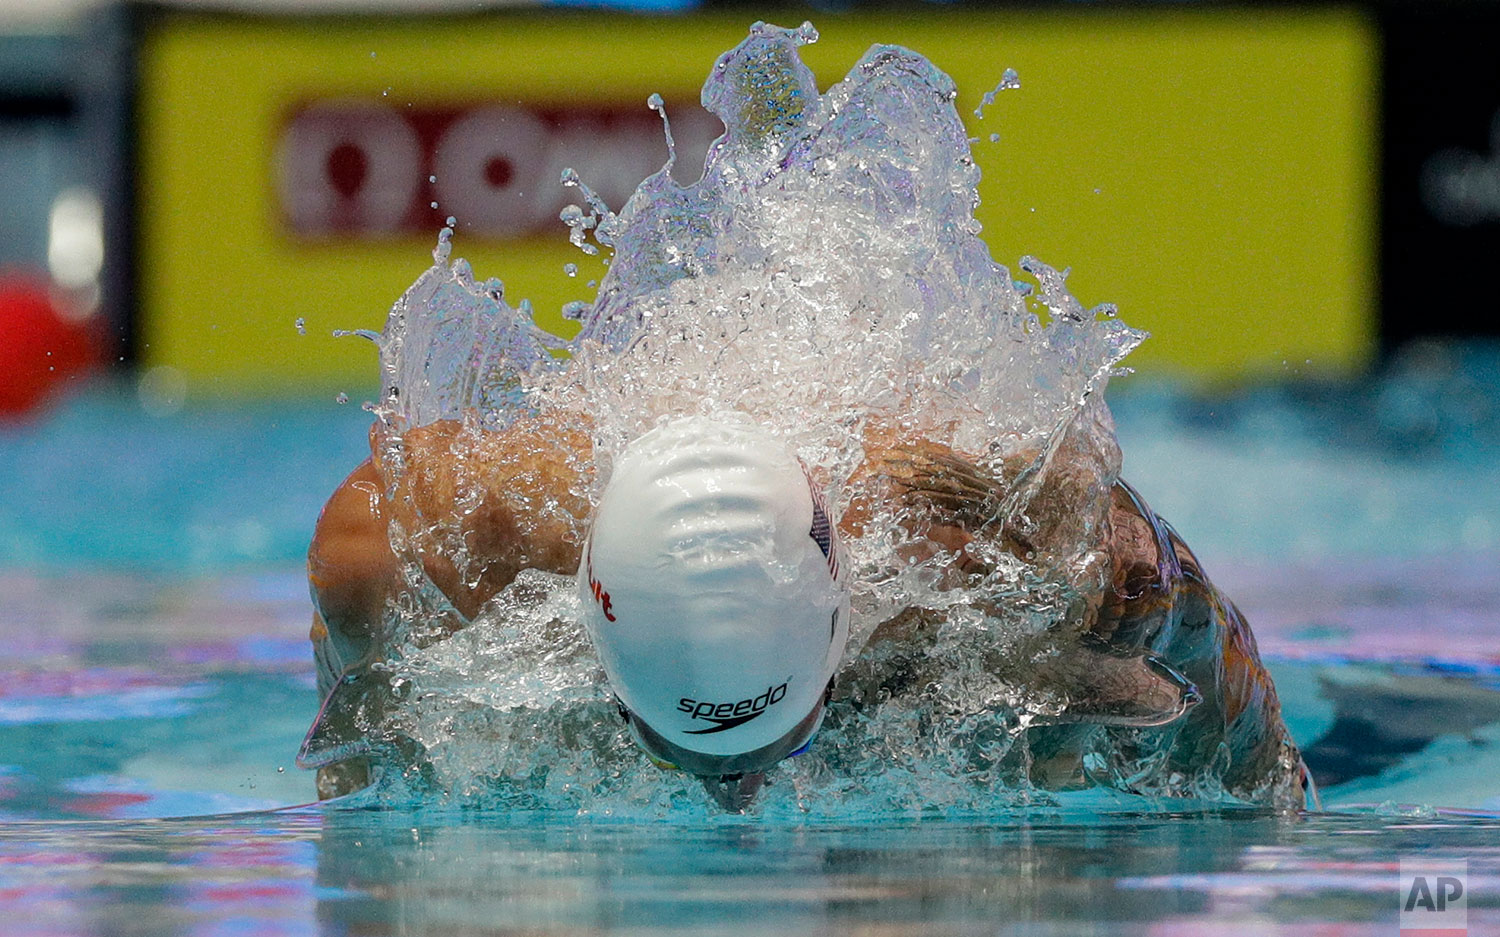 United States' Caeleb Dressel swims in his heat of the men's 100m butterfly at the World Swimming Championships in Gwangju, South Korea, Friday, July 26, 2019. (AP Photo/Mark Schiefelbein)